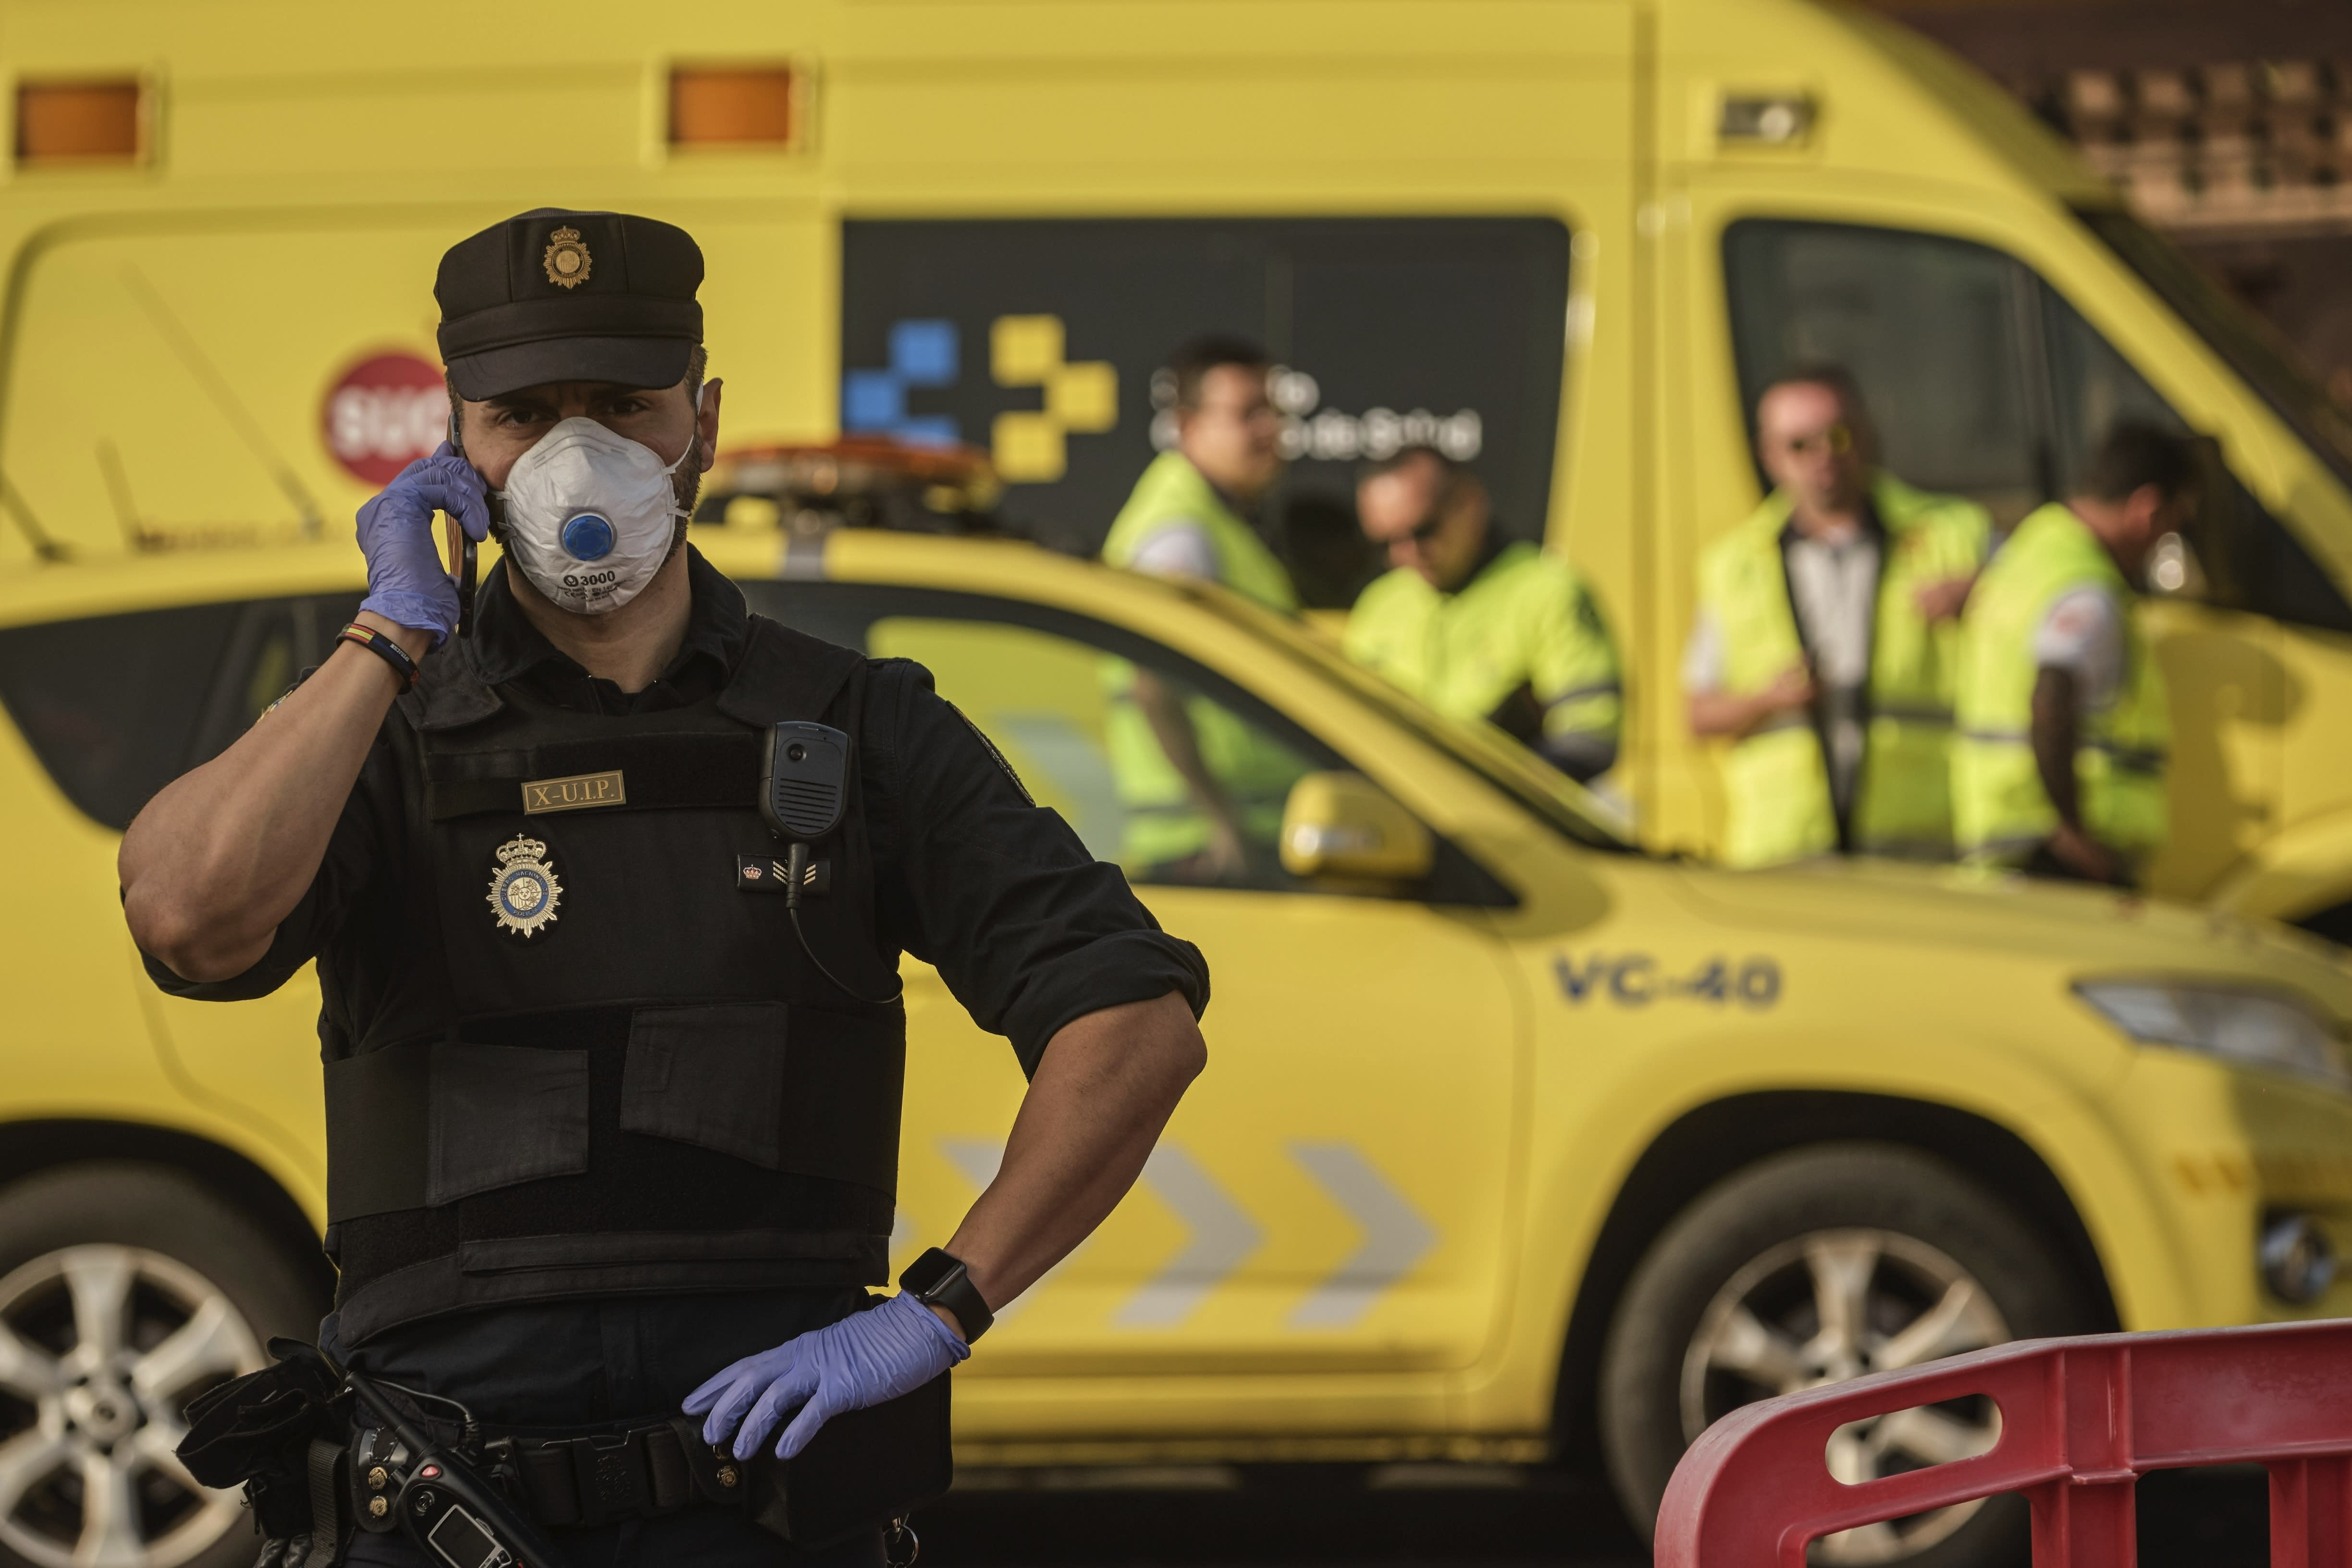 A police officer wearing a mask talks on the phone in front of the H10 Costa Adeje Palace hotel in La Caleta, in the Canary Island of Tenerife, Spain, Wednesday, Feb. 26, 2020. Spanish officials say a tourist hotel on the Canary Island of Tenerife has been placed in quarantine after an Italian doctor staying there tested positive for the COVID-19 virus and Spanish news media says some 1,000 tourists staying at the complex are not allowed to leave. (AP Photo)